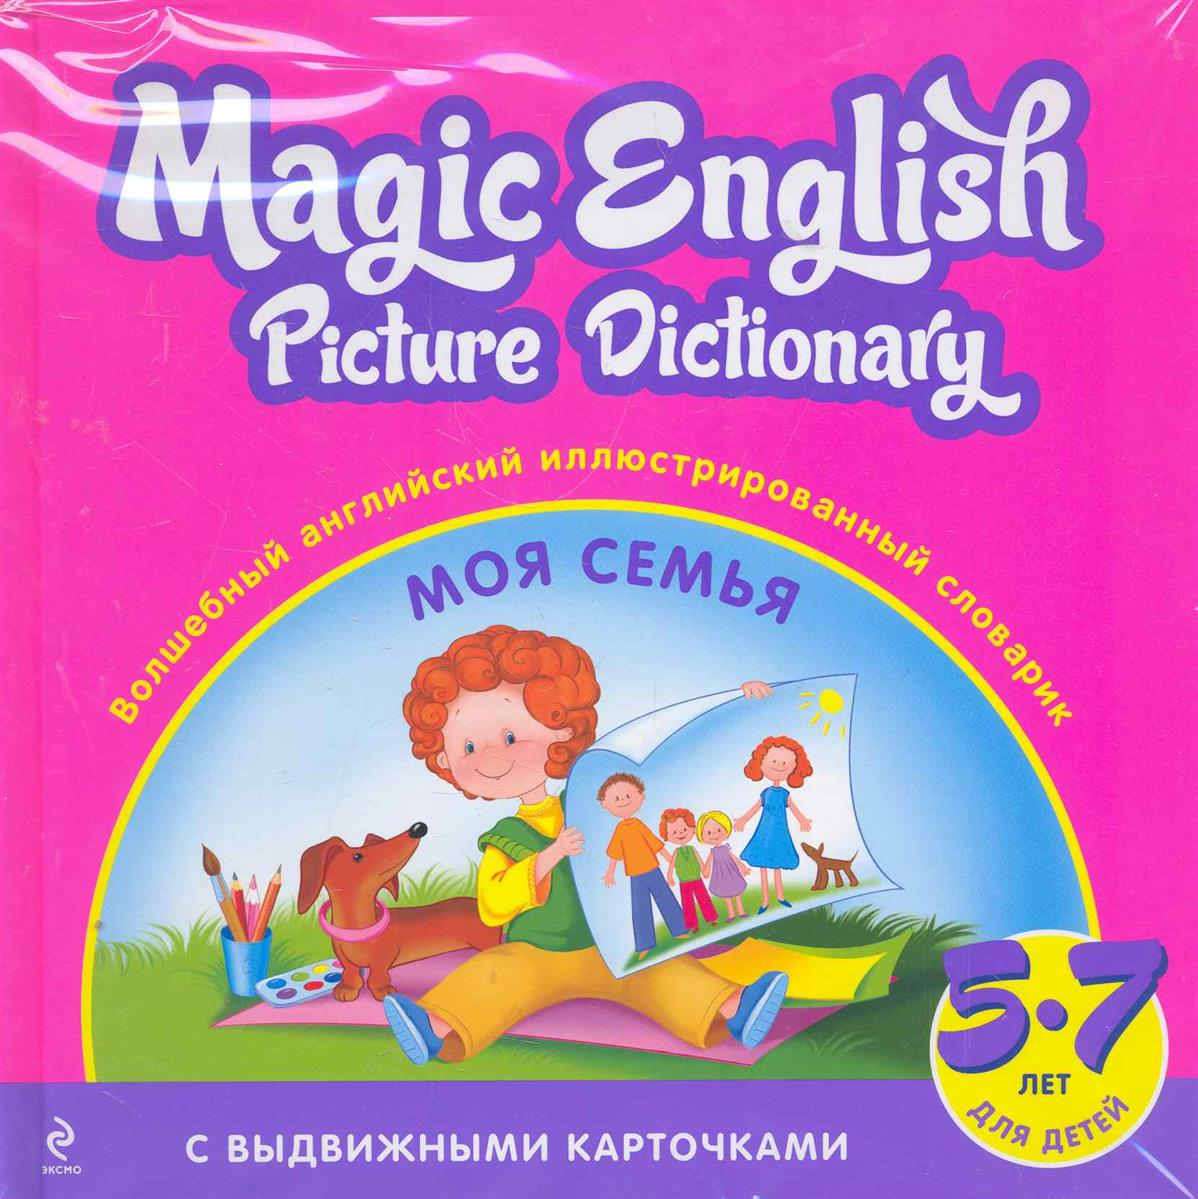 Magic English Picture Dictionary Волшебный англ. илл. словарик Моя семья my first english picture dictionary on holiday pict dictionnaire a1 stick play